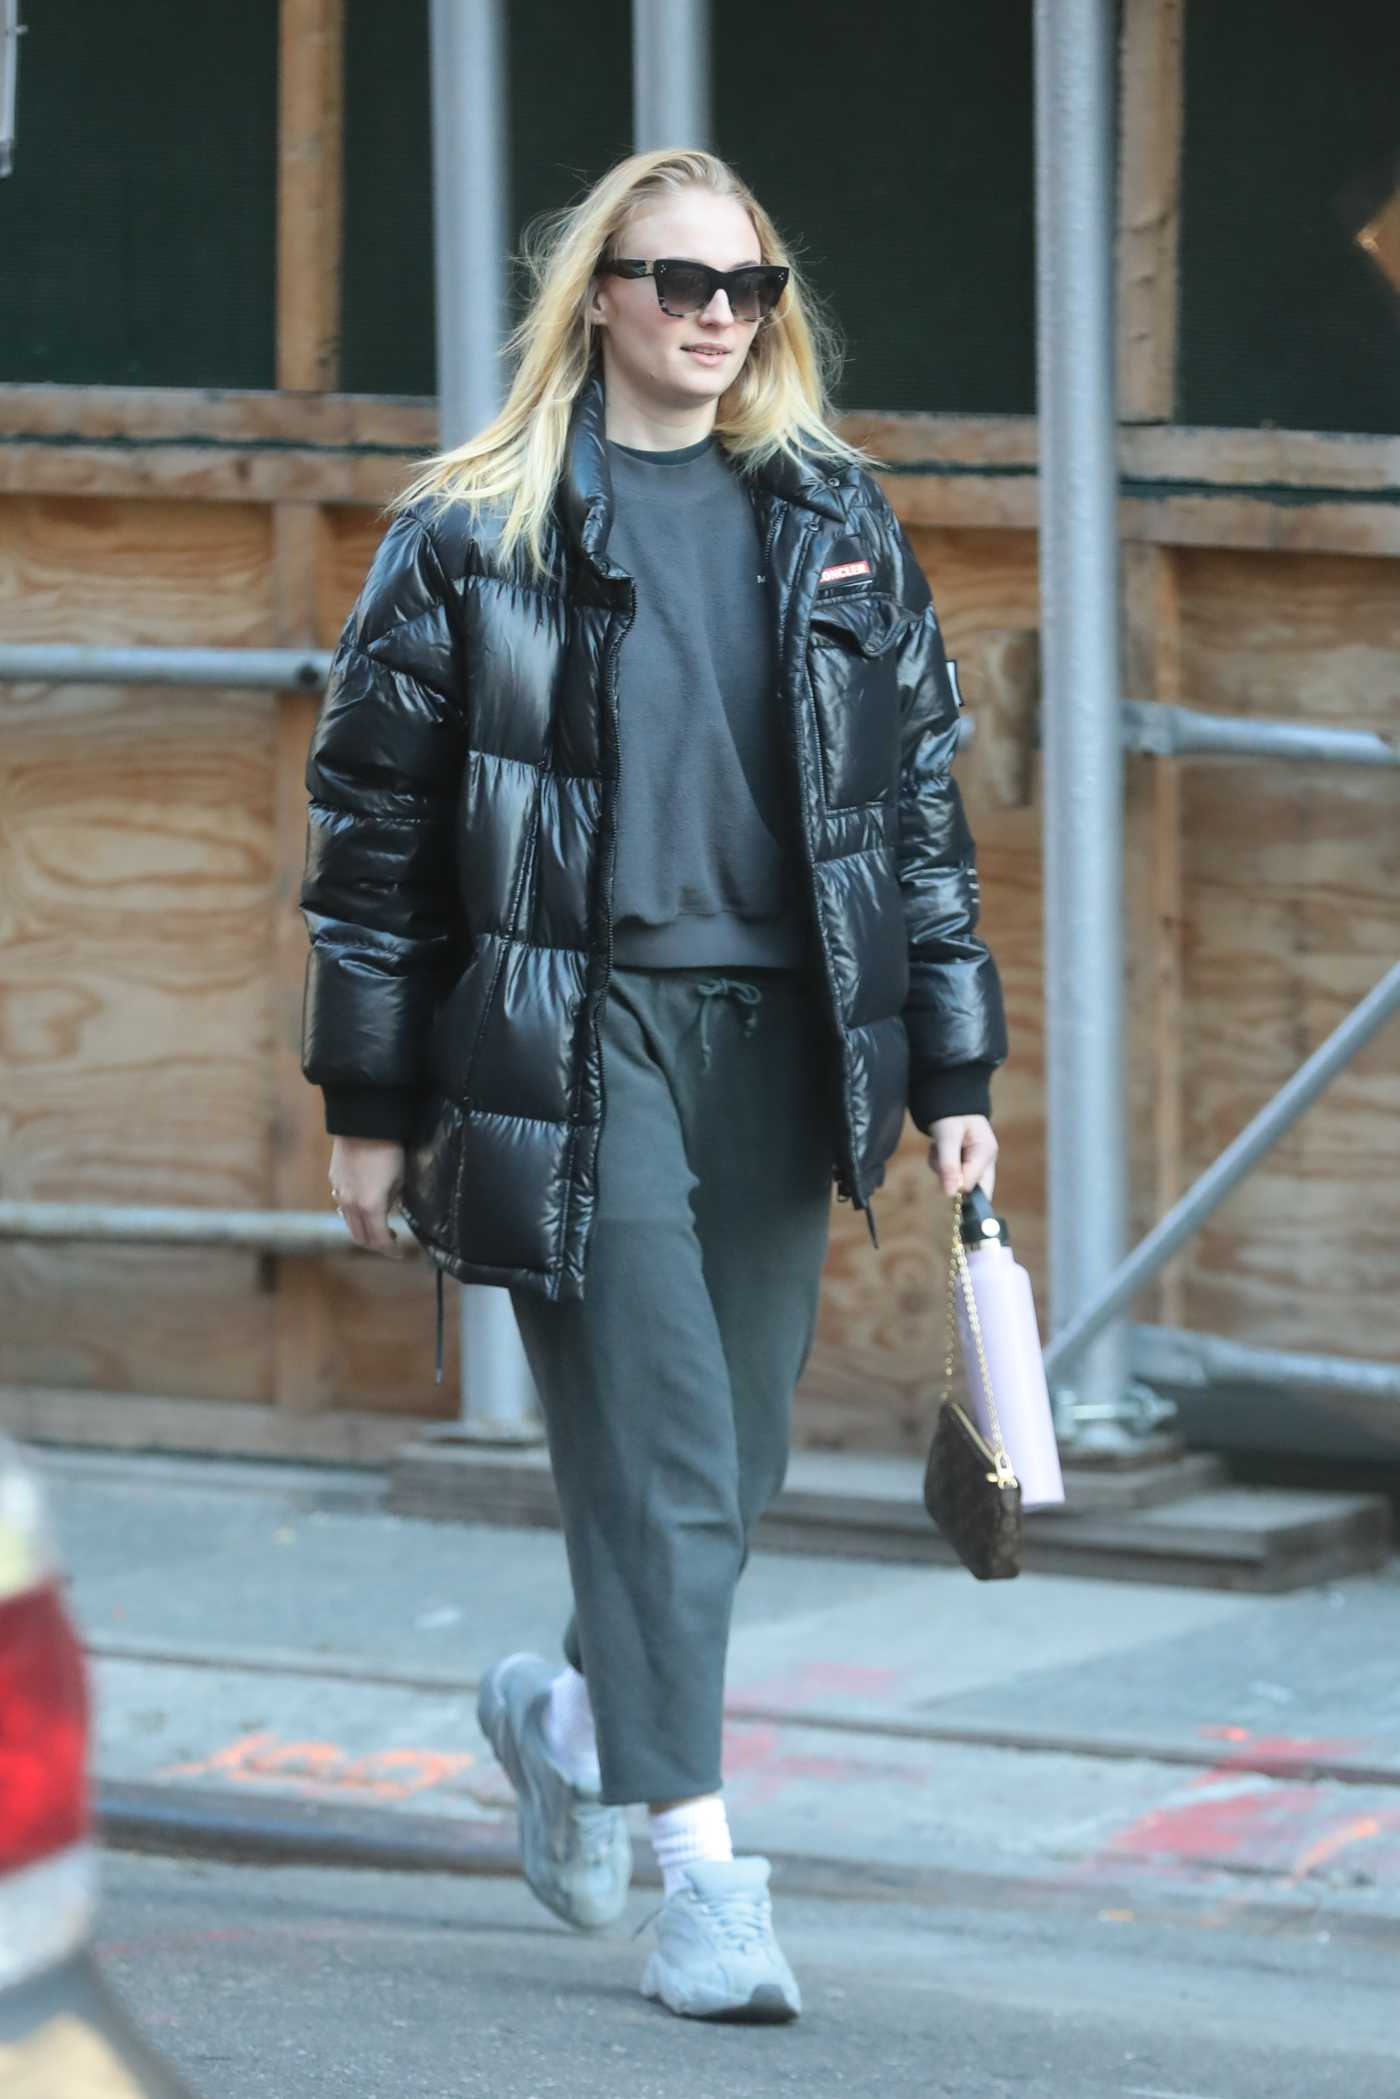 Sophie Turner in a Black Puffer Jacket Was Seen Out in NYC 11/29/2019